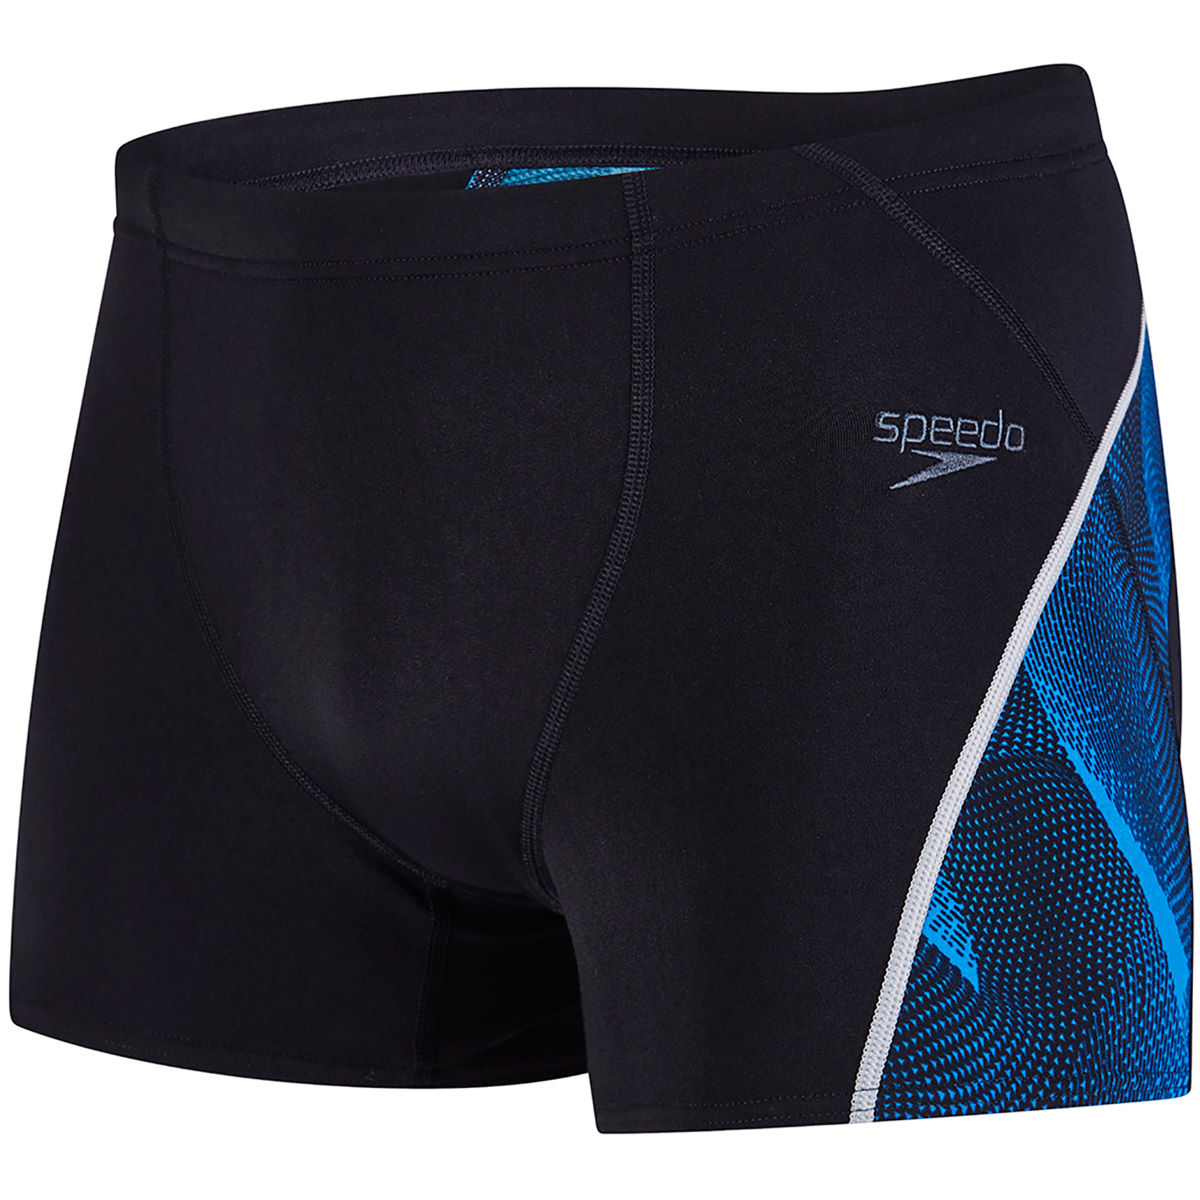 Boxer de bain Speedo Fit Graphic - 34 Black/Danube